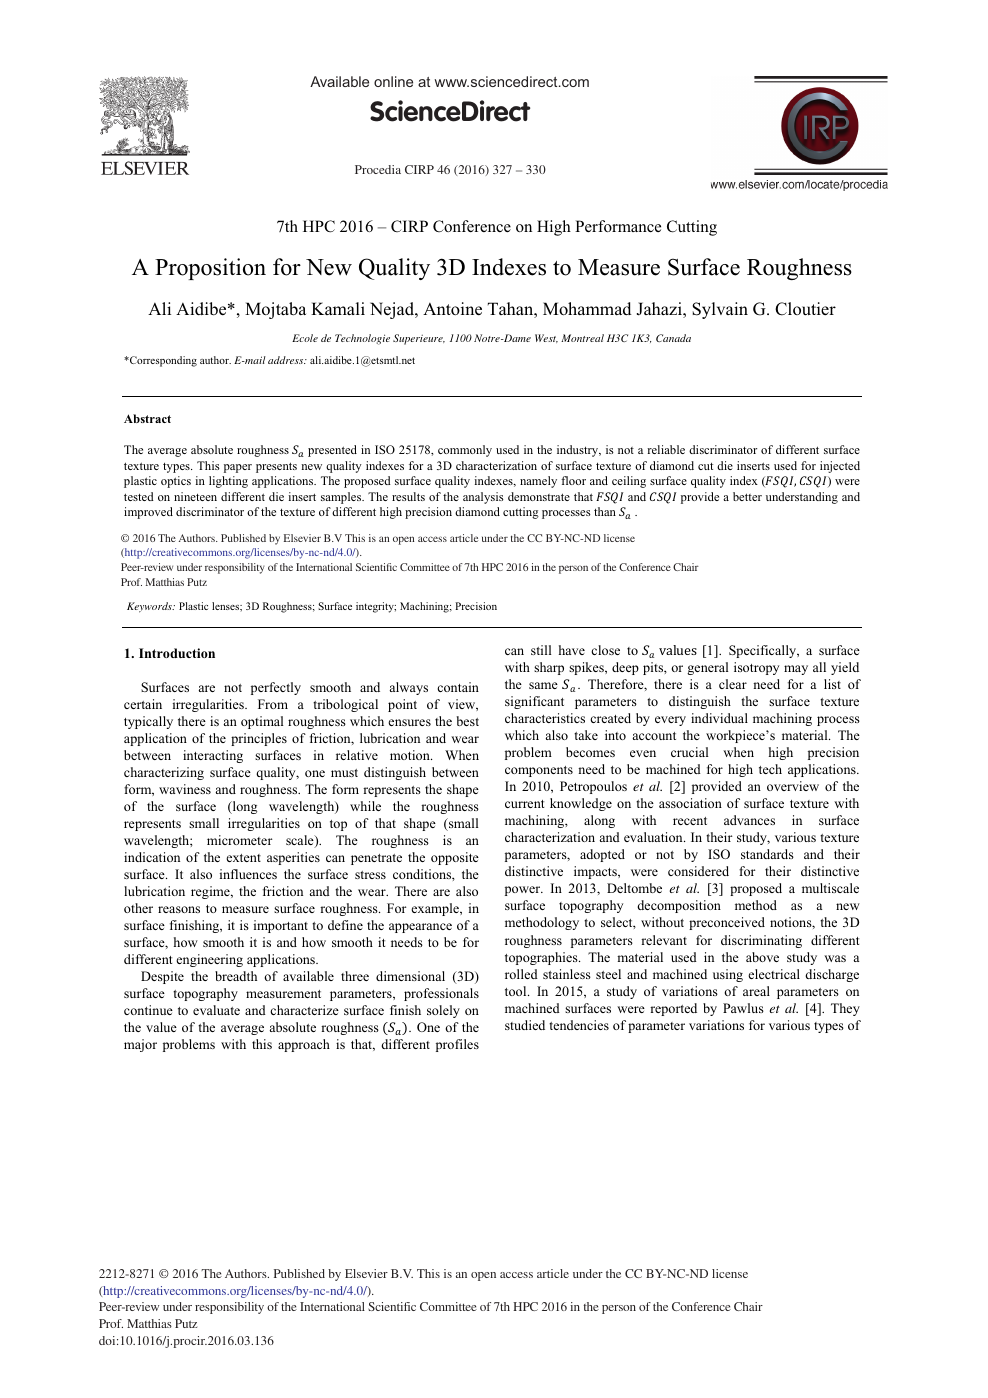 A Proposition for New Quality 3D Indexes to Measure Surface